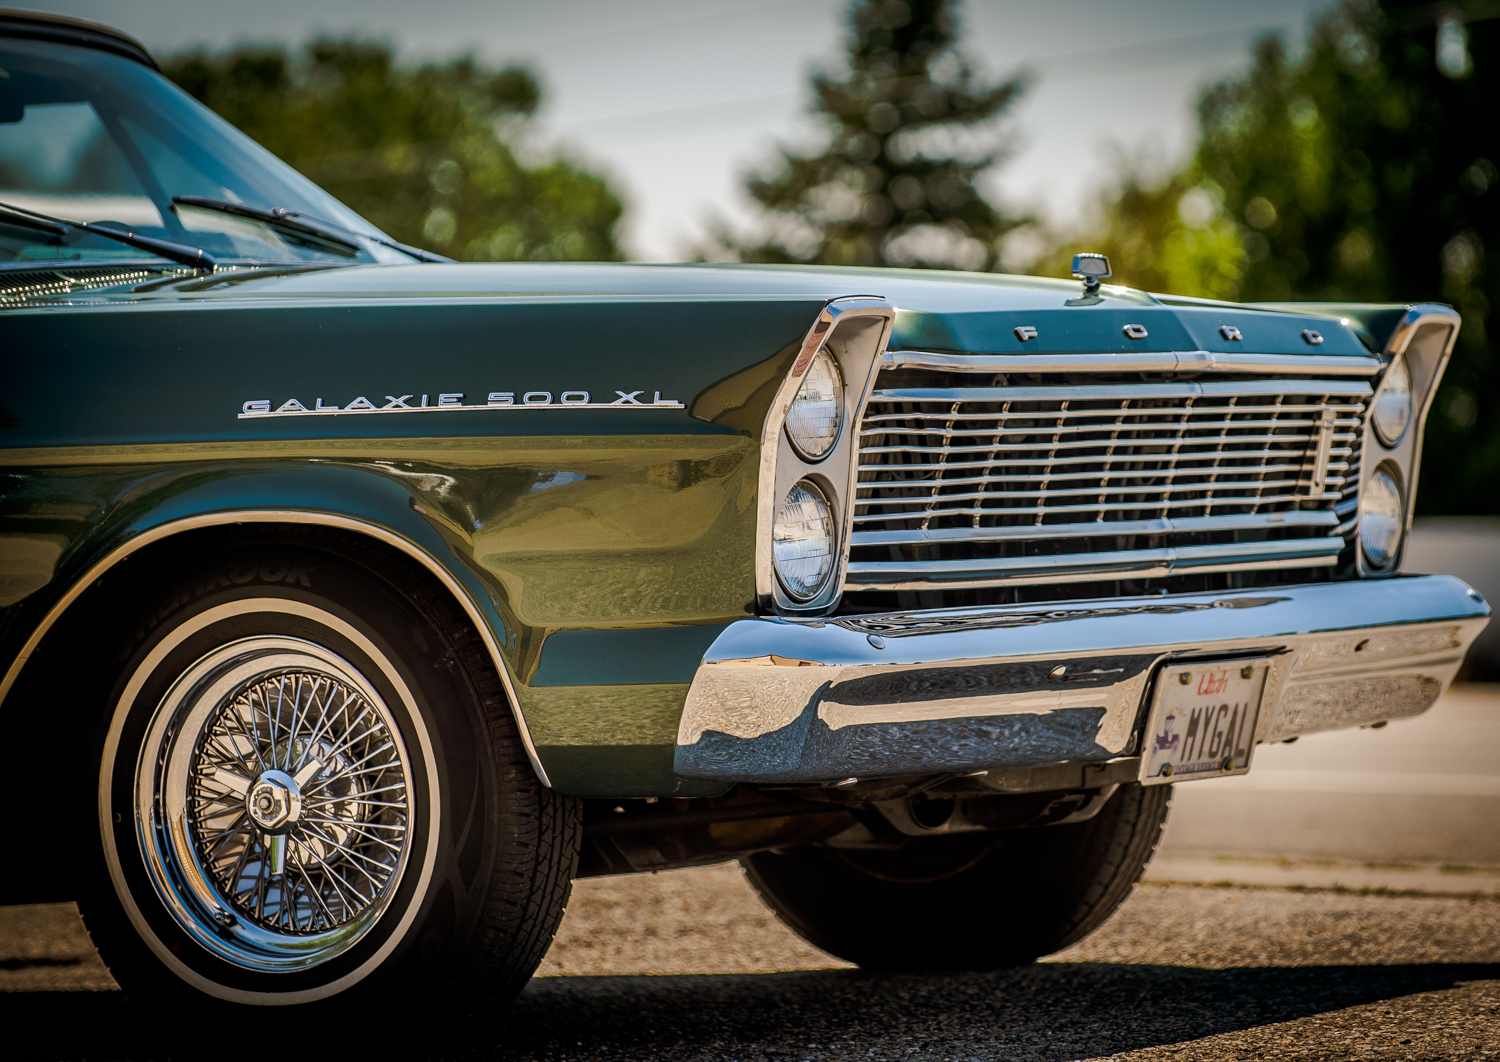 Reed_Muffler_Car_Show_130816_07067_©NGS-MBS